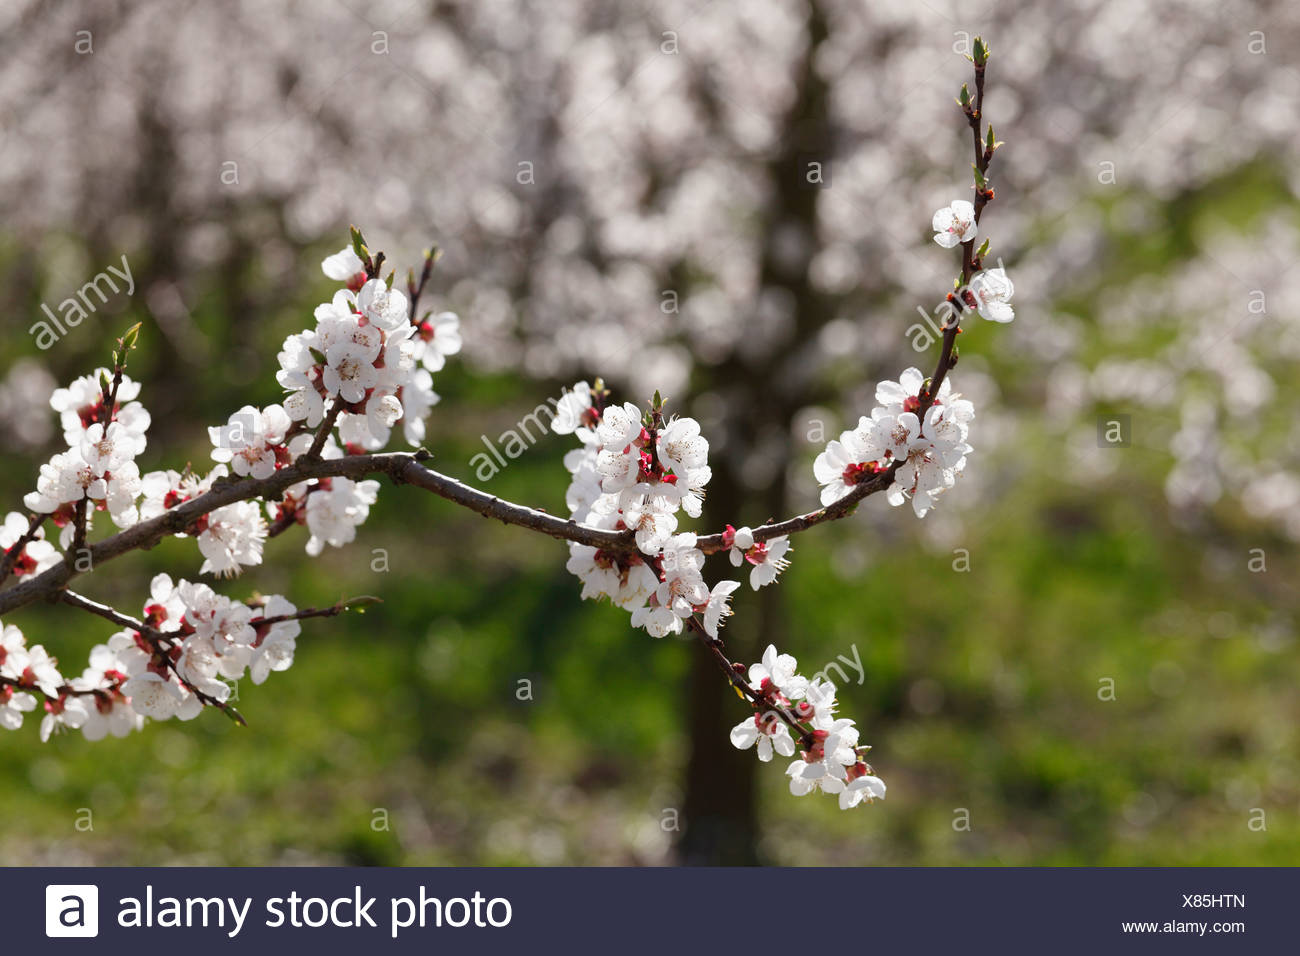 Austria, Lower Austria, Wachau, Twig of apricot blossoms, close up - Stock Image